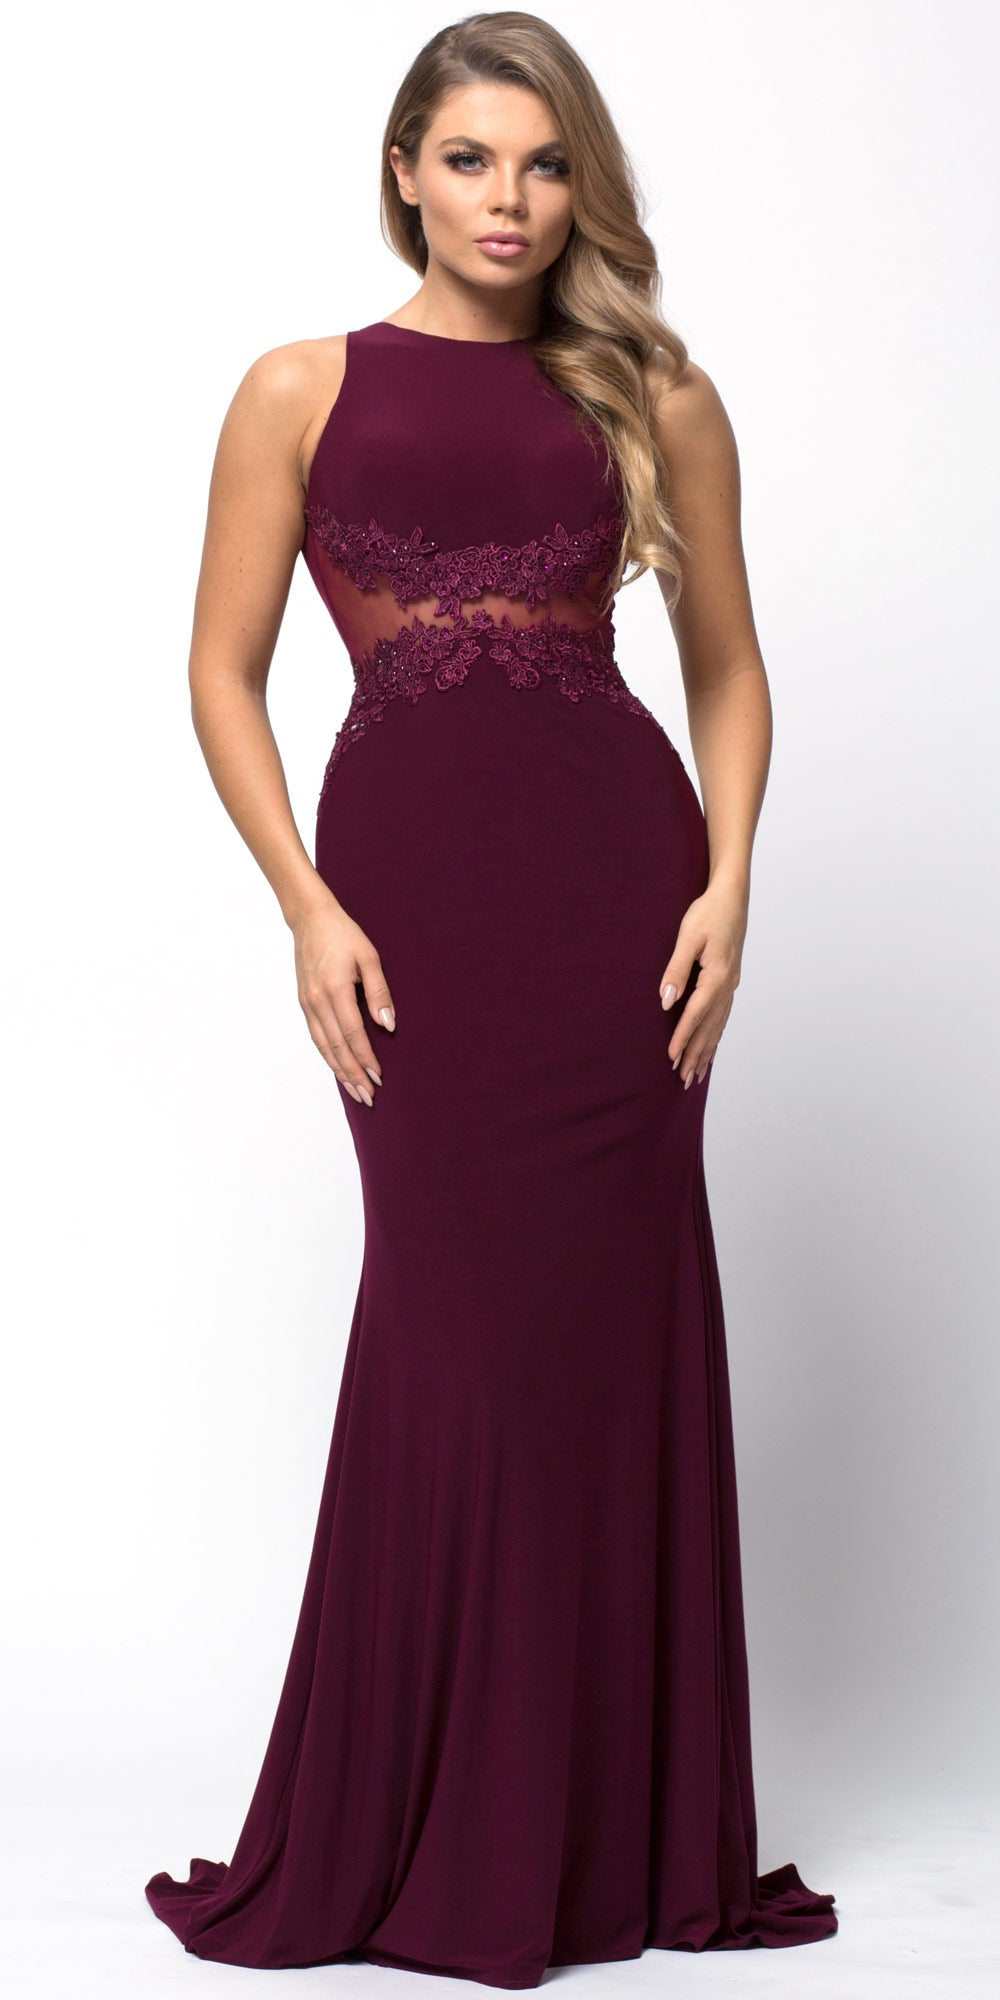 Image of Lace Accent Sheer Waist Long Formal Evening Jersey Dress in Burgundy